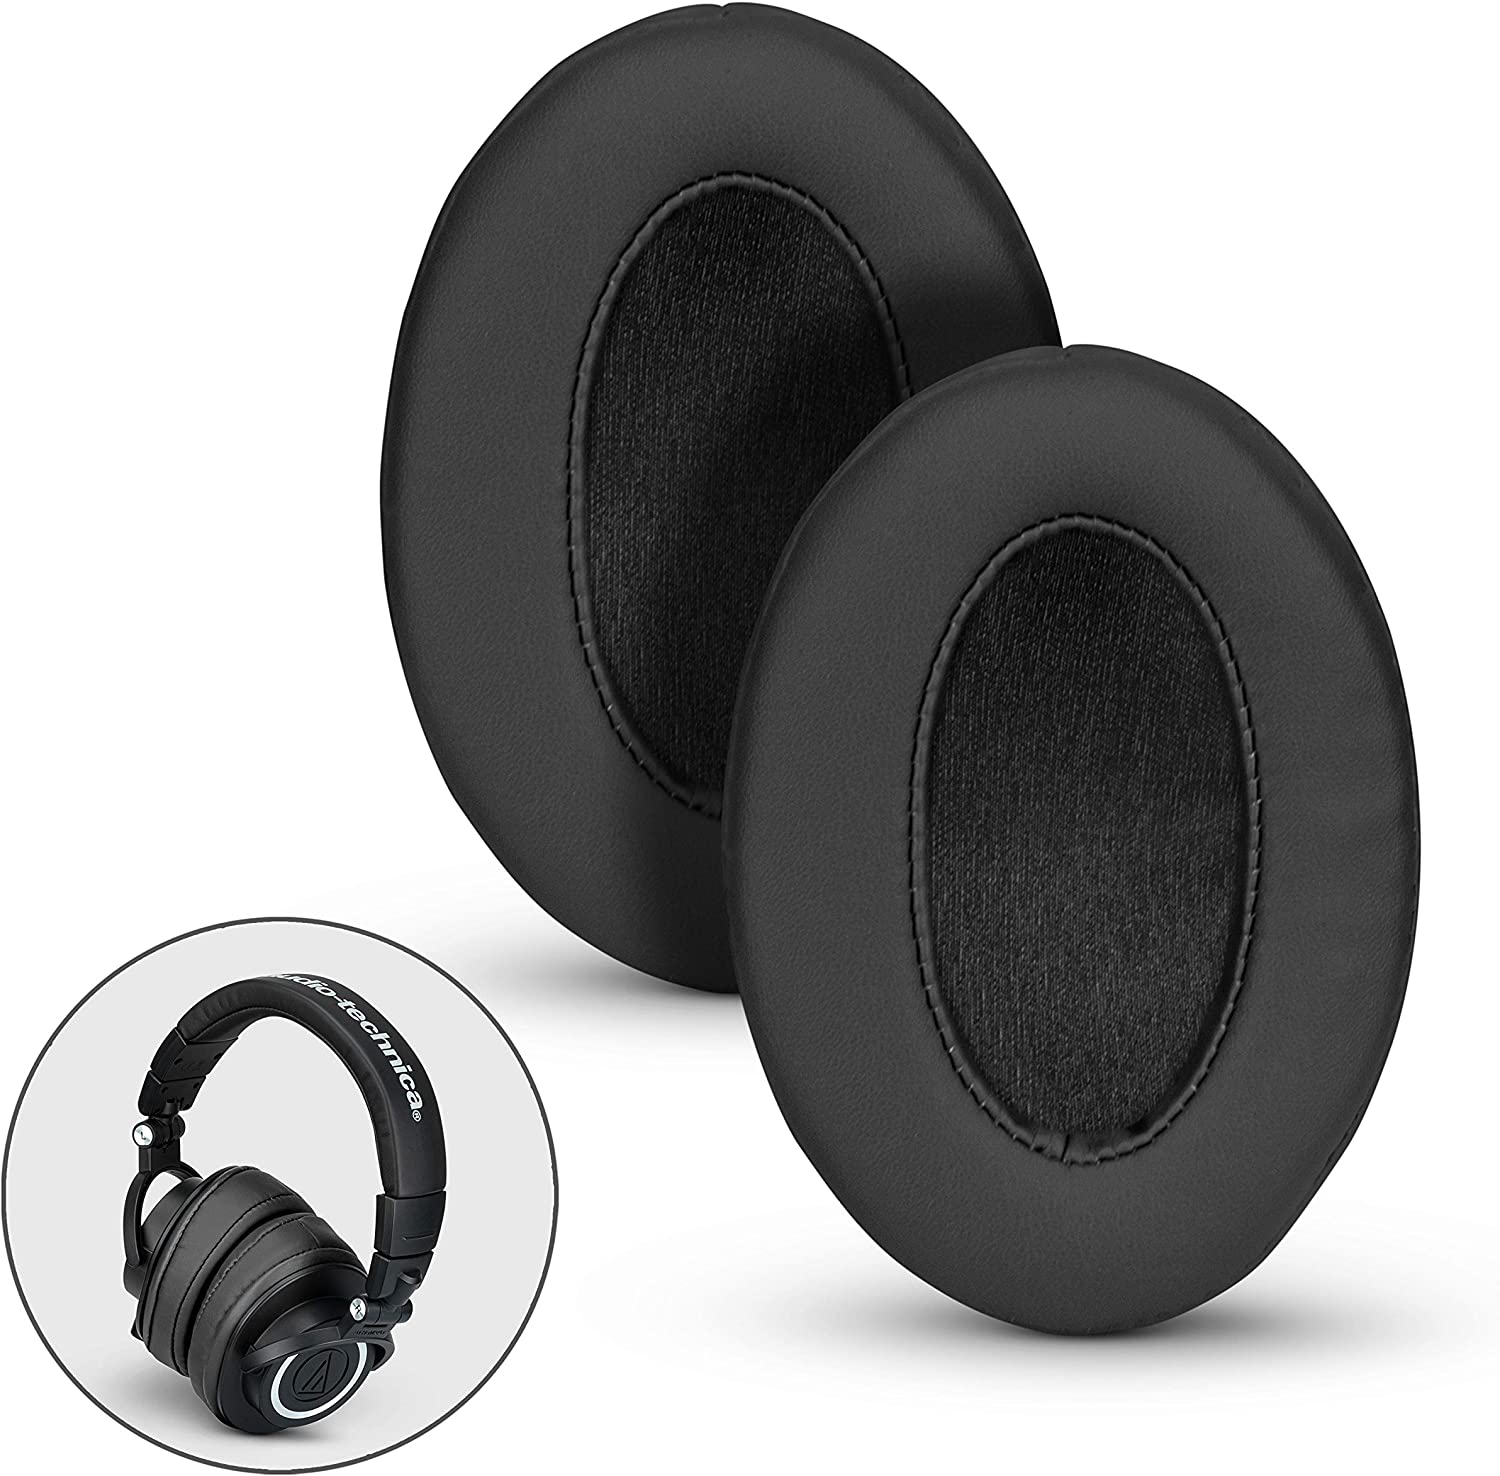 BRAINWAVZ Angled Ear Pads for ATH M50X, M50XBT, M40X, M30X, HyperX, SHURE, Turtle Beach, AKG, ATH, Philips, JBL, Fostex Replacement Memory Foam Earpads & Fits Many Headphones (See List), Pro Black